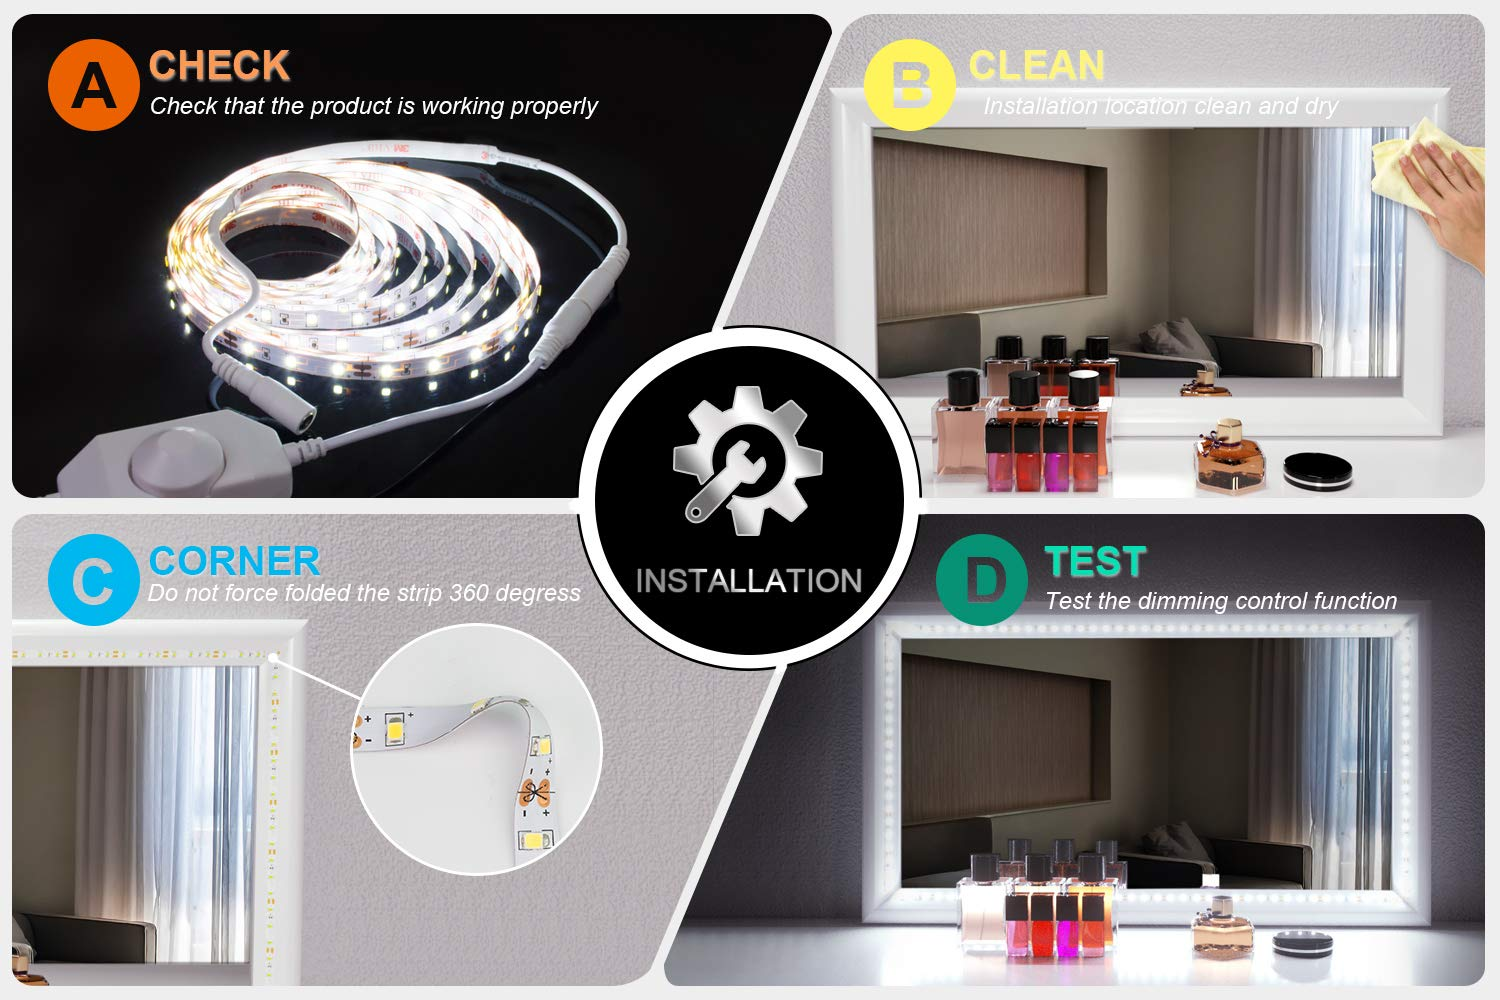 LED Vanity Mirror Lights Kit for Makeup Dressing Table Vanity Set 13ft Flexible LED Light Strip 6000K Daylight White with Dimmer and Power Supply, DIY Mirror, Mirror not Included by PANGTON VILLA (Image #4)